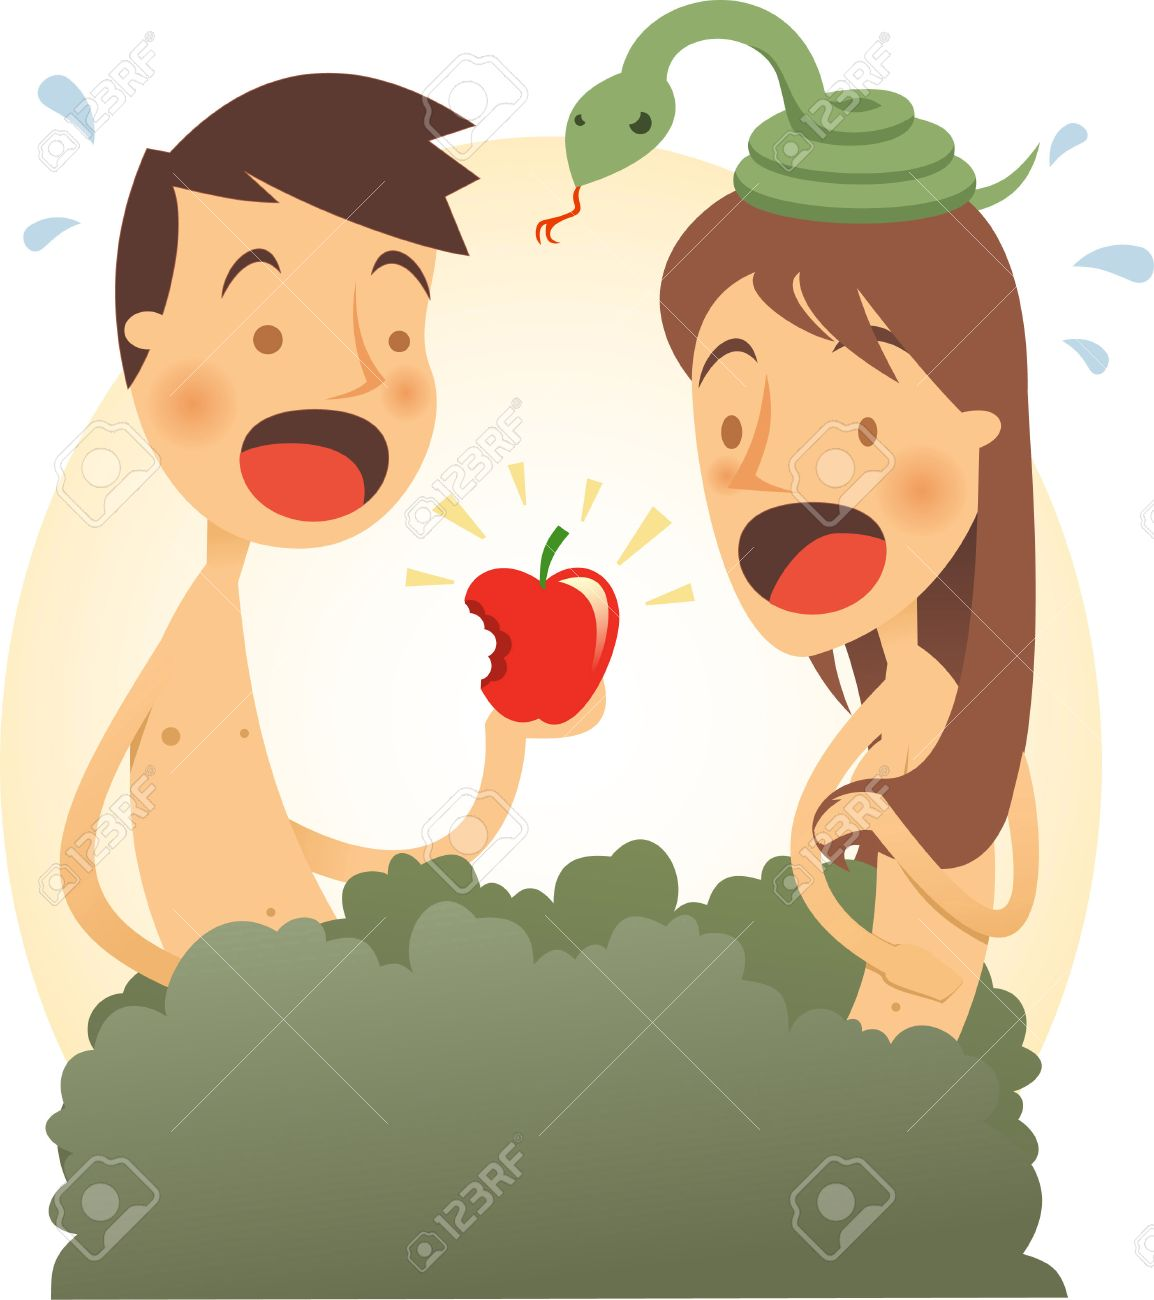 adam and eve cartoon illustration royalty free cliparts vectors